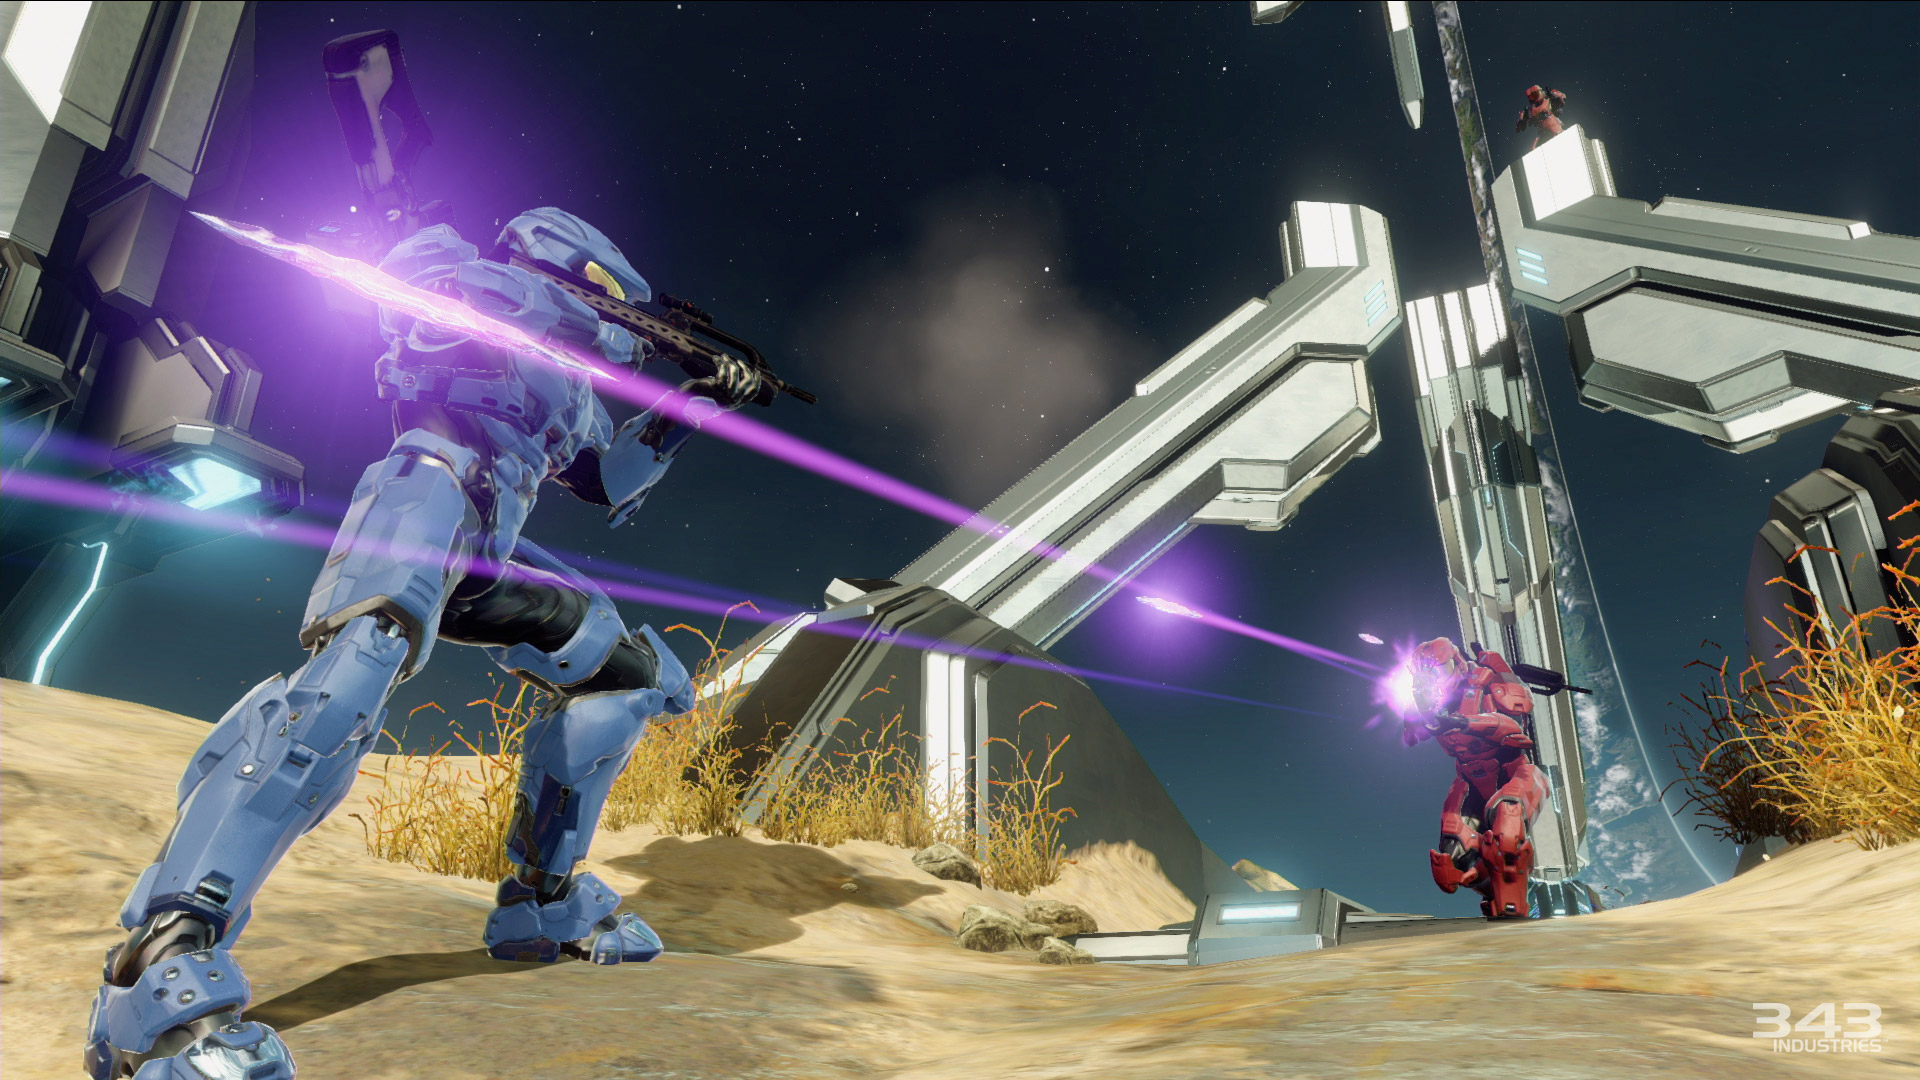 Halo team apologizes for The Master Chief Collection woes, pledges to 'make this right'